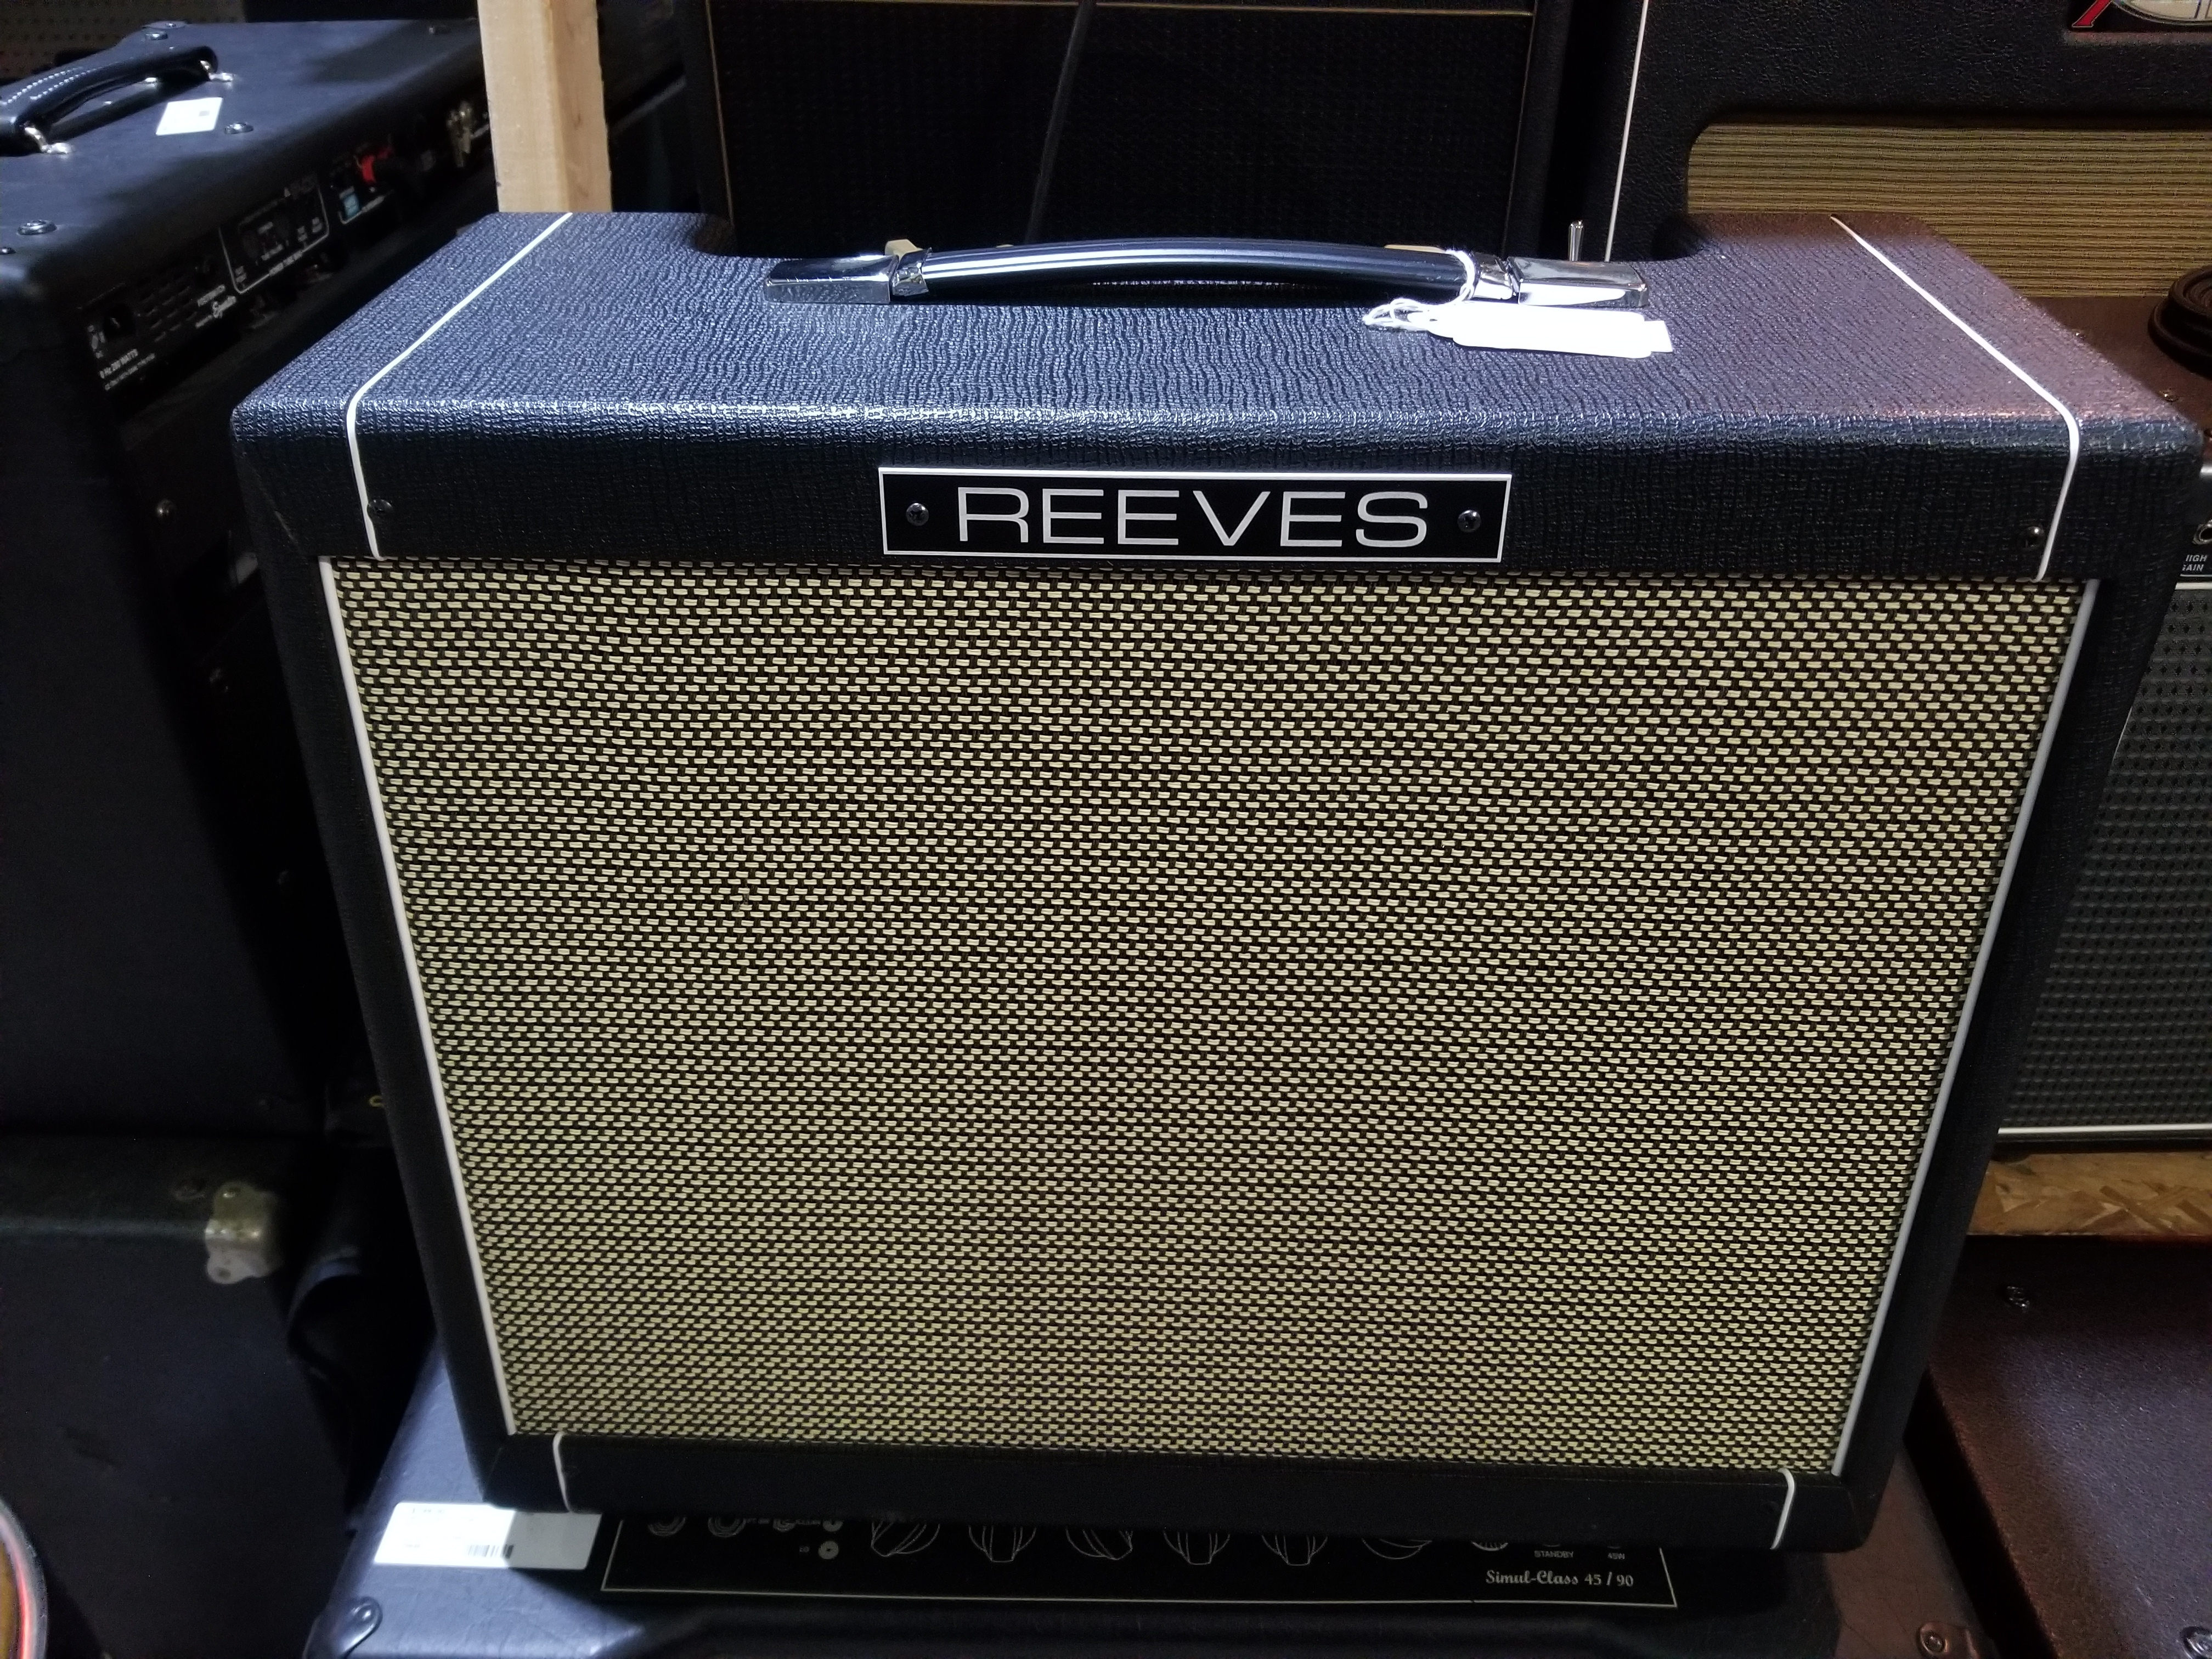 REEVES Custom 12 PS 1x12 Guitar Amp Combo - Local Pickup Only!